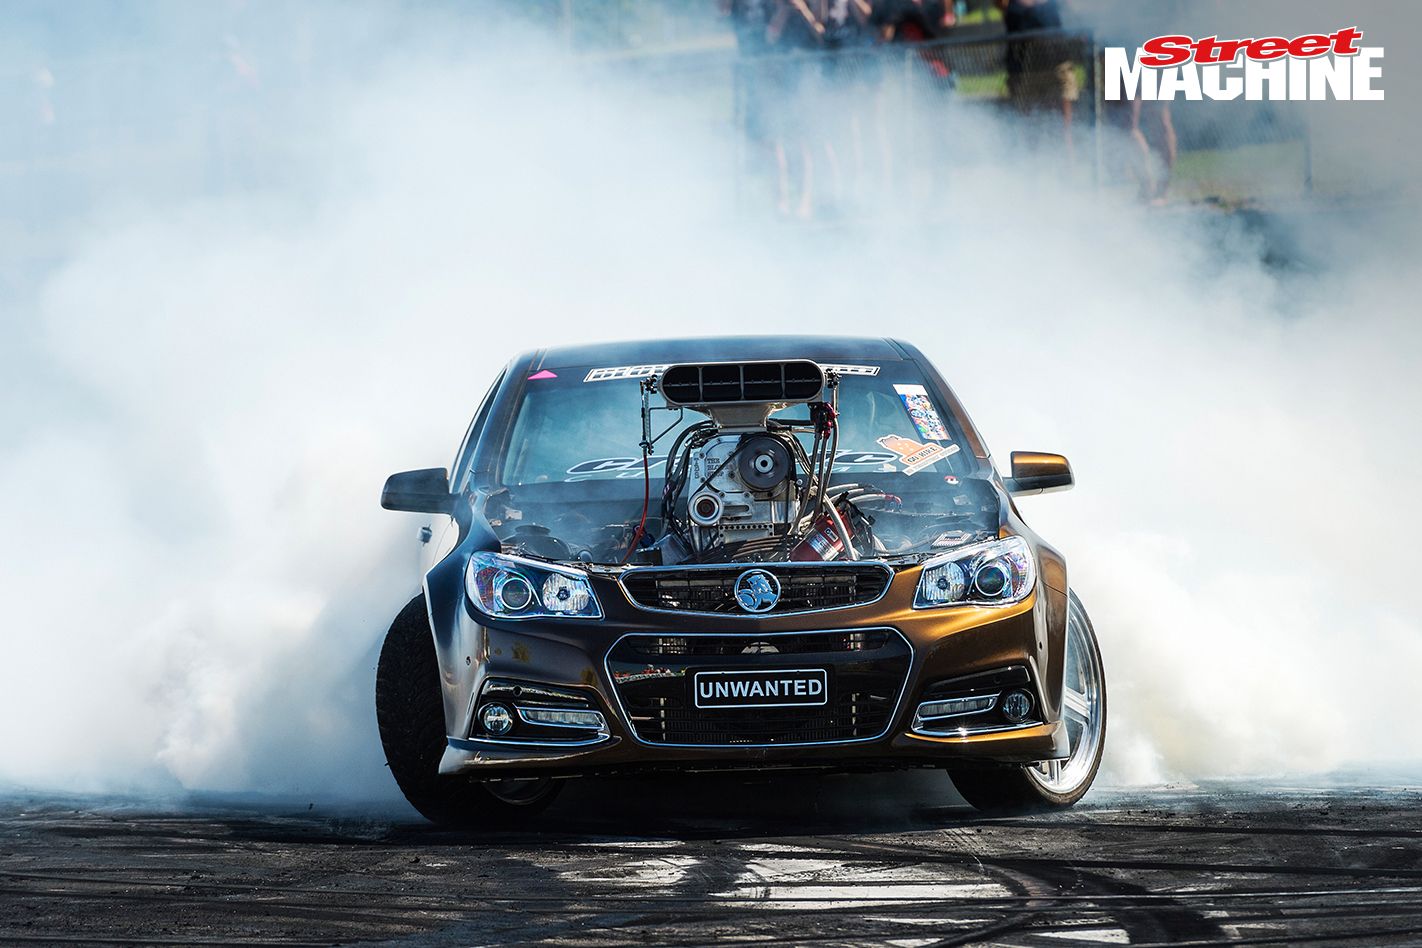 MATT JAMES UNWANTED BURNOUT PROFILE